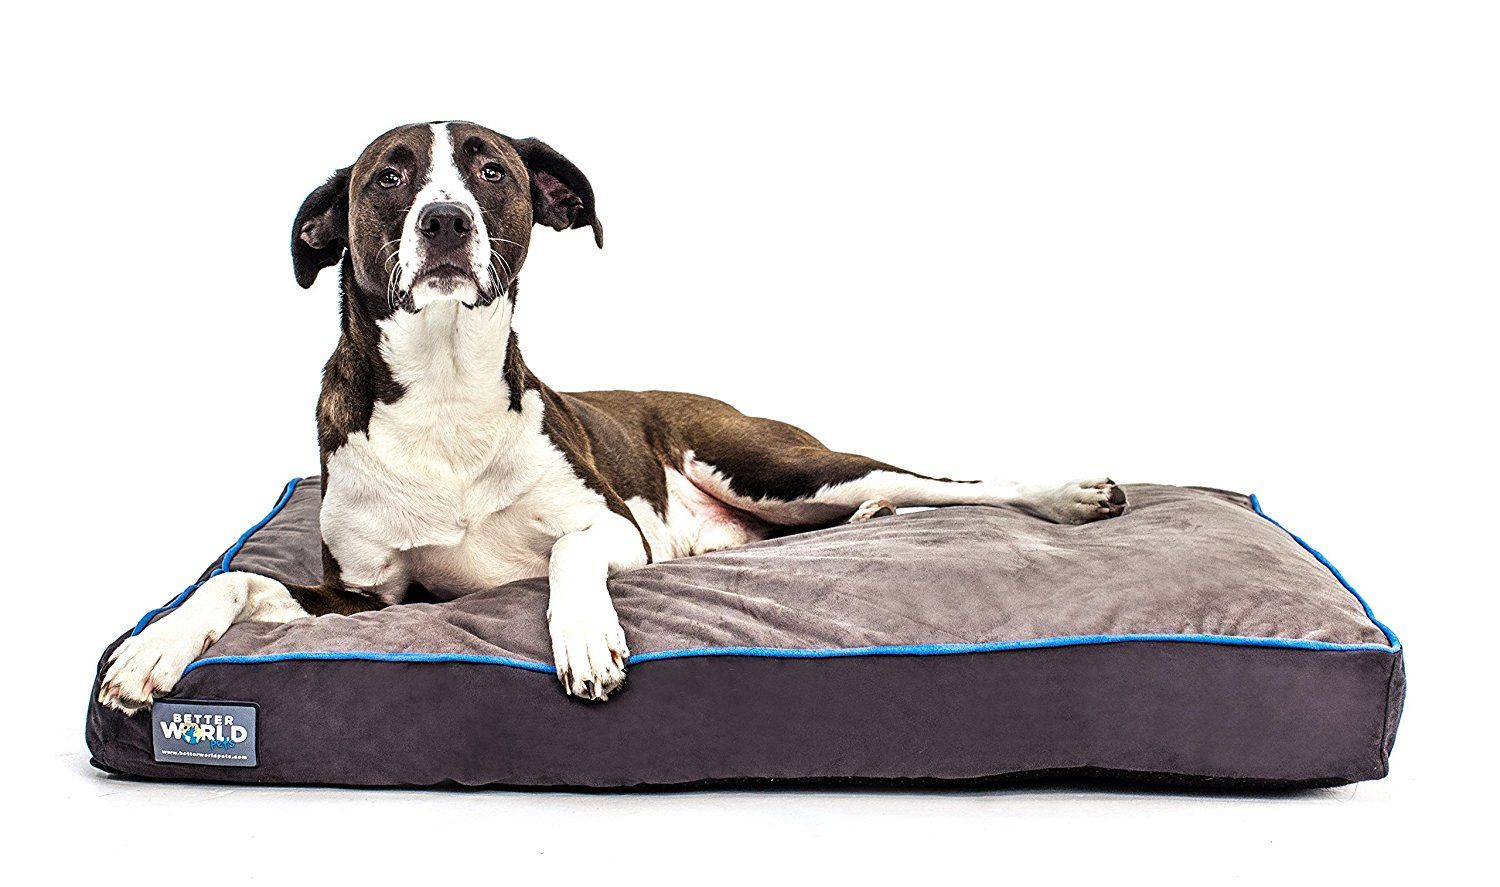 Best dog bed Orthopedic dog bed, Cool dog beds, Memory